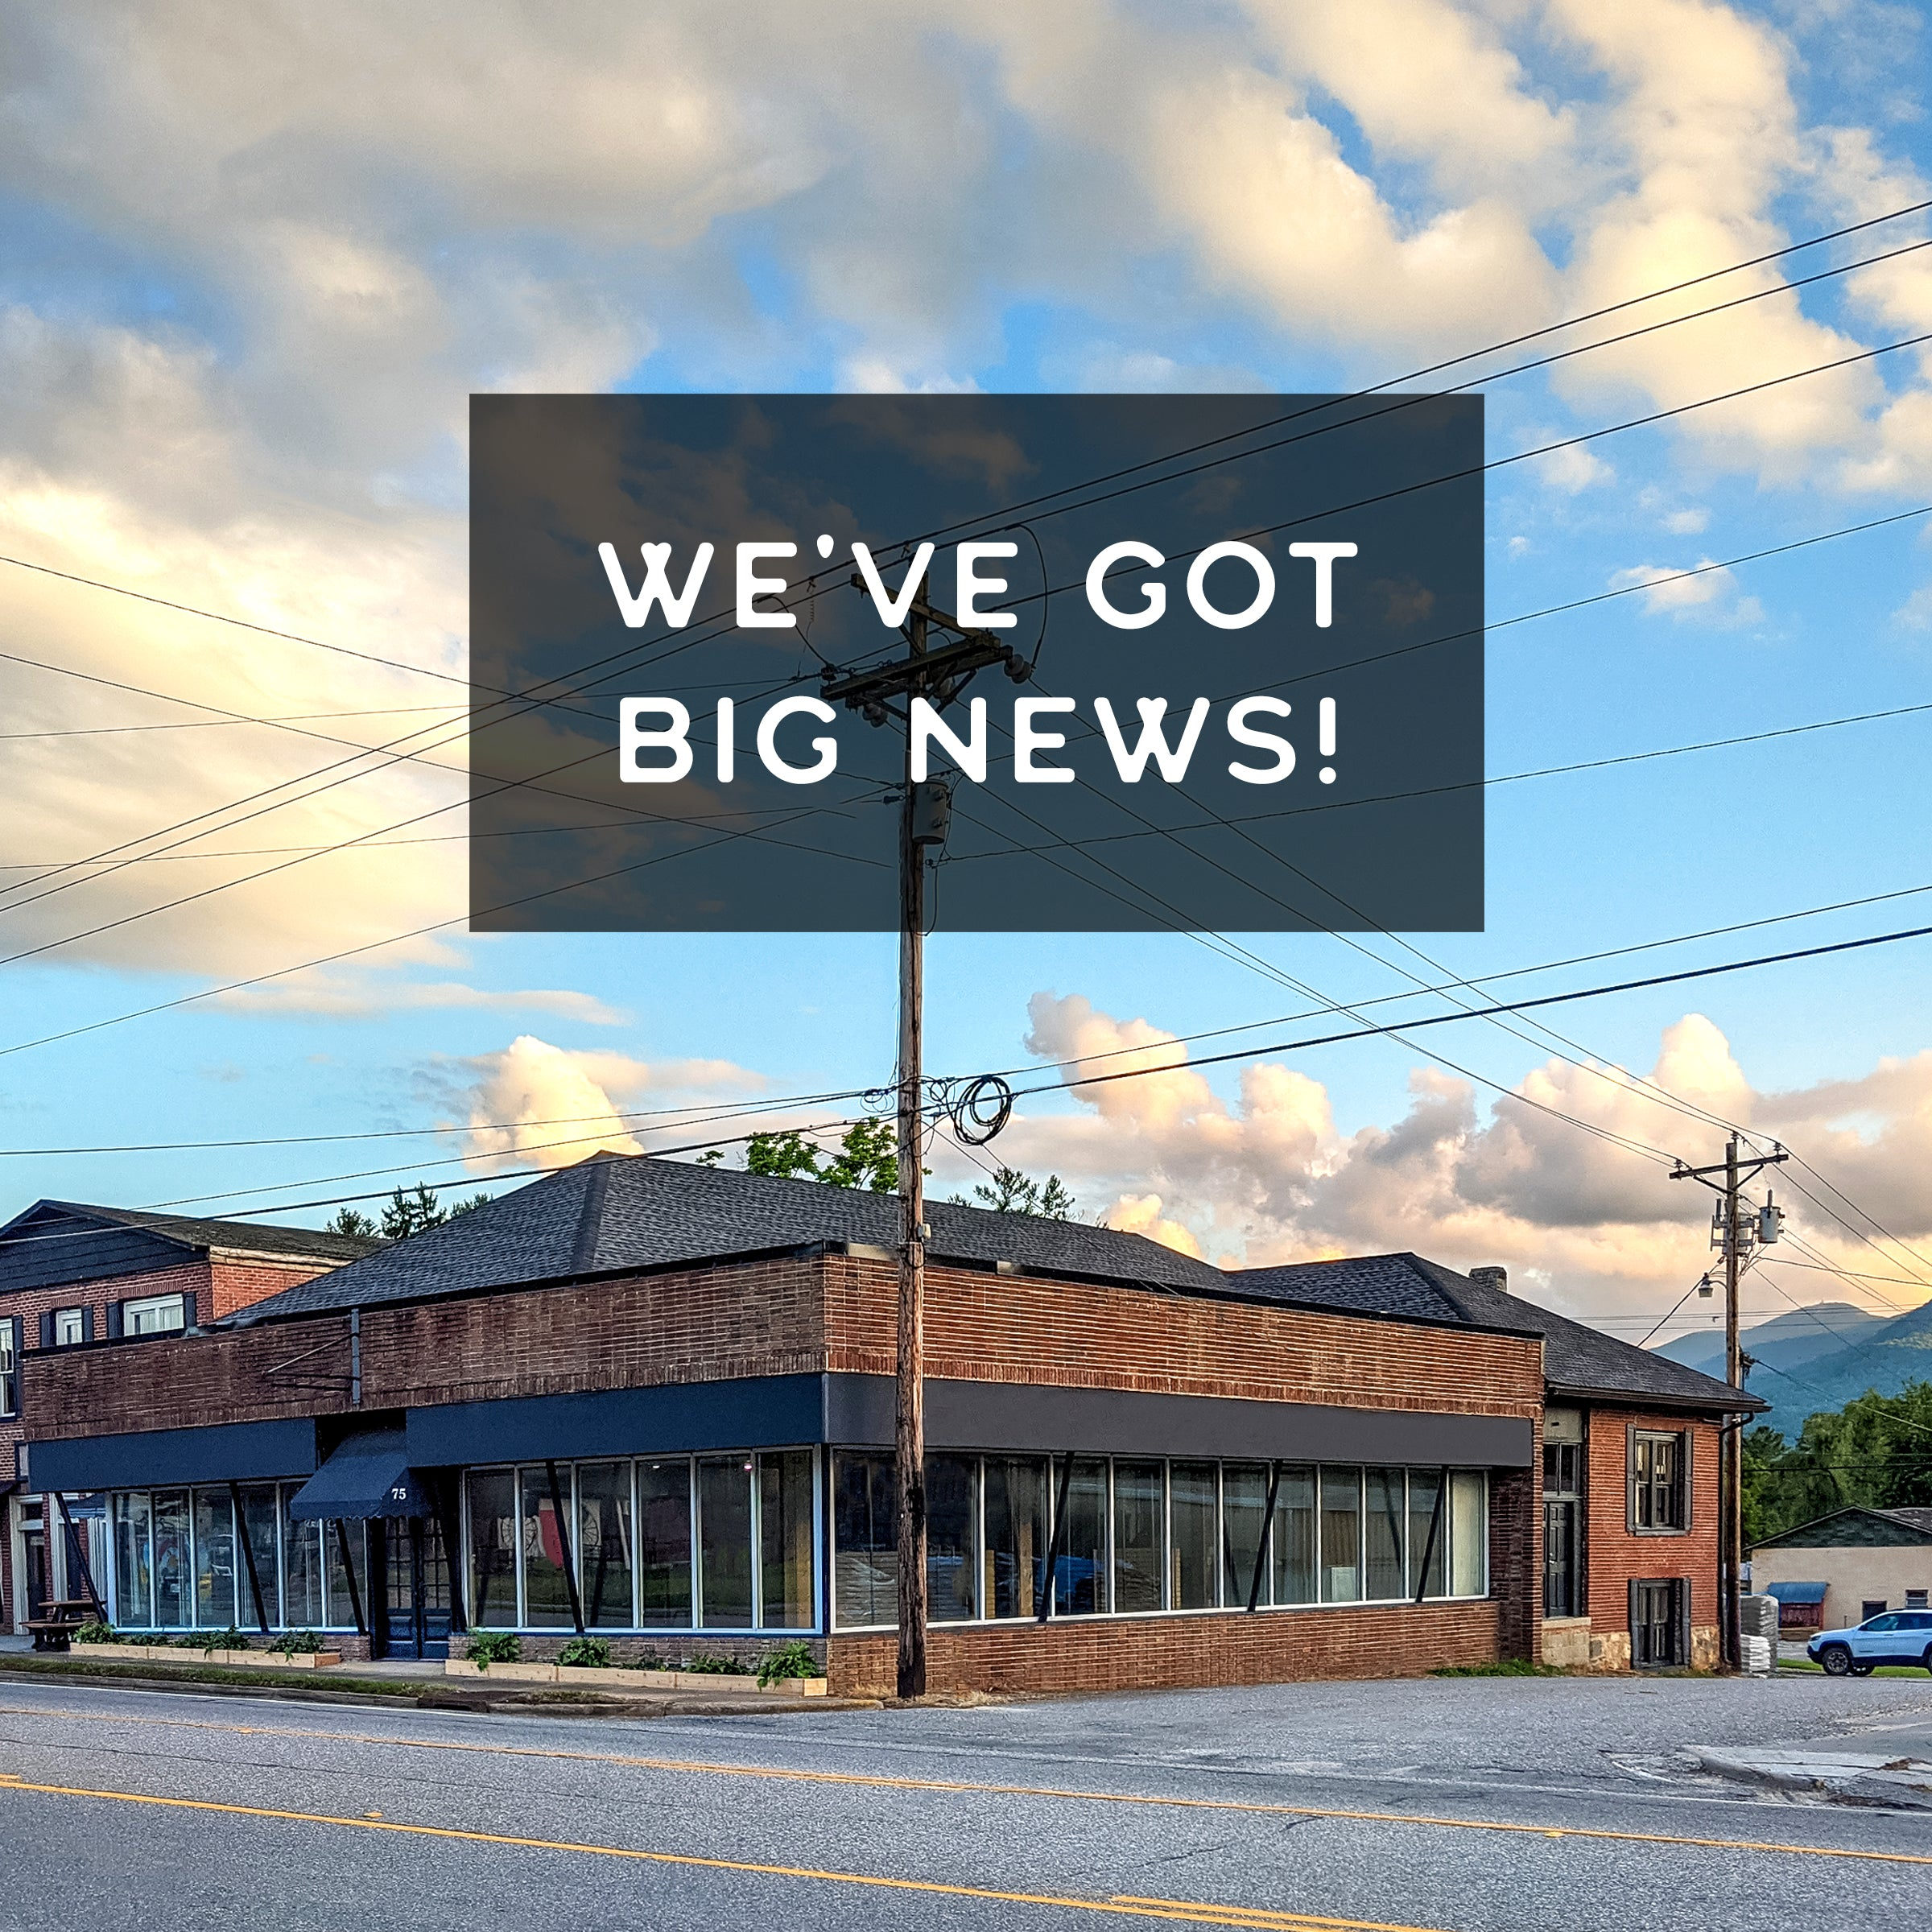 Trailful is moving to 75 North Main Street in Hiawassee, GA